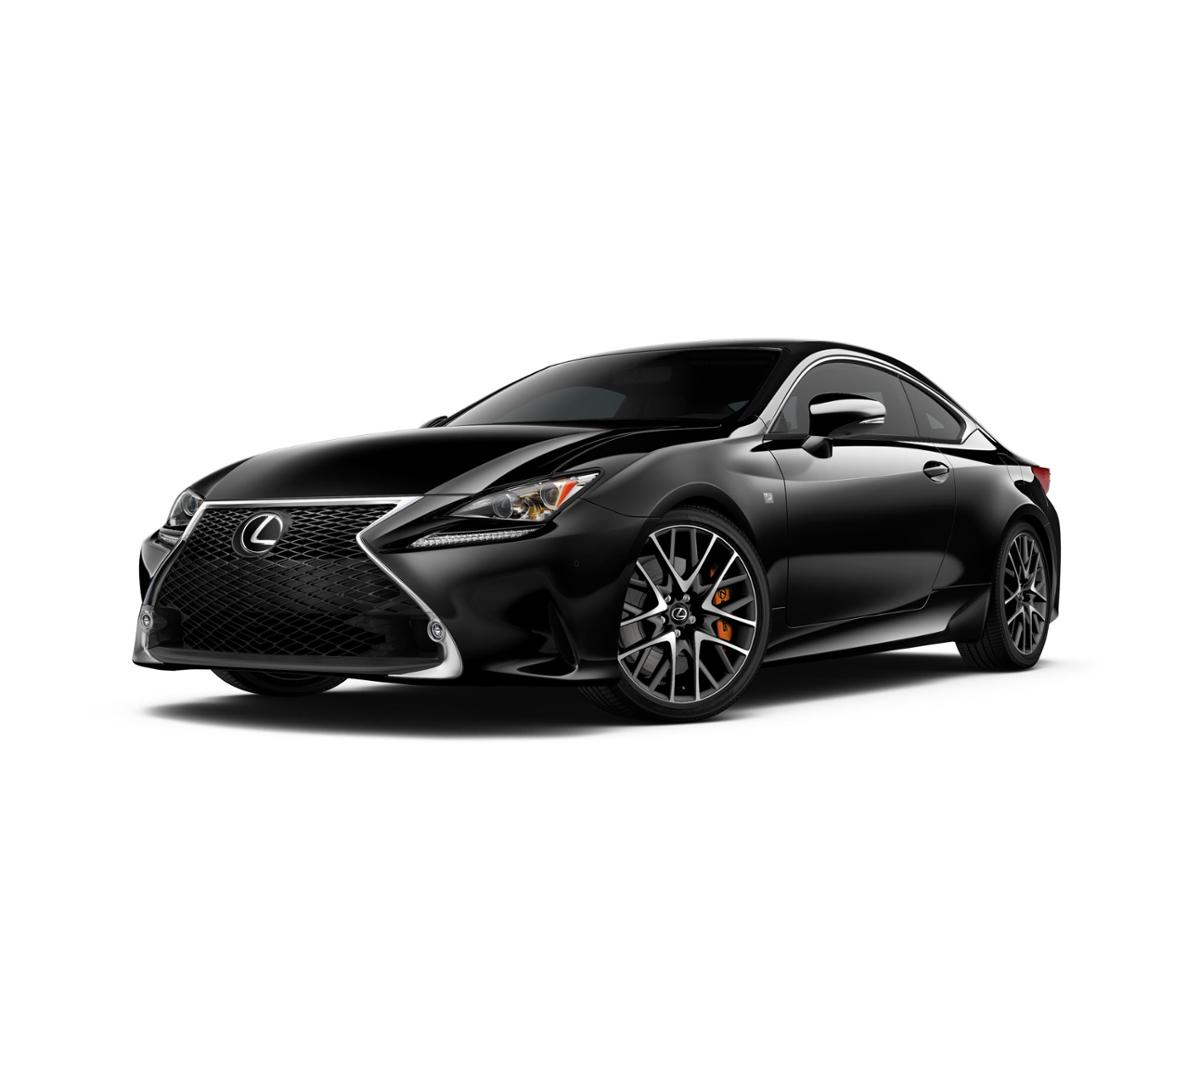 carlsbad obsidian 2017 lexus rc turbo new car for sale. Black Bedroom Furniture Sets. Home Design Ideas